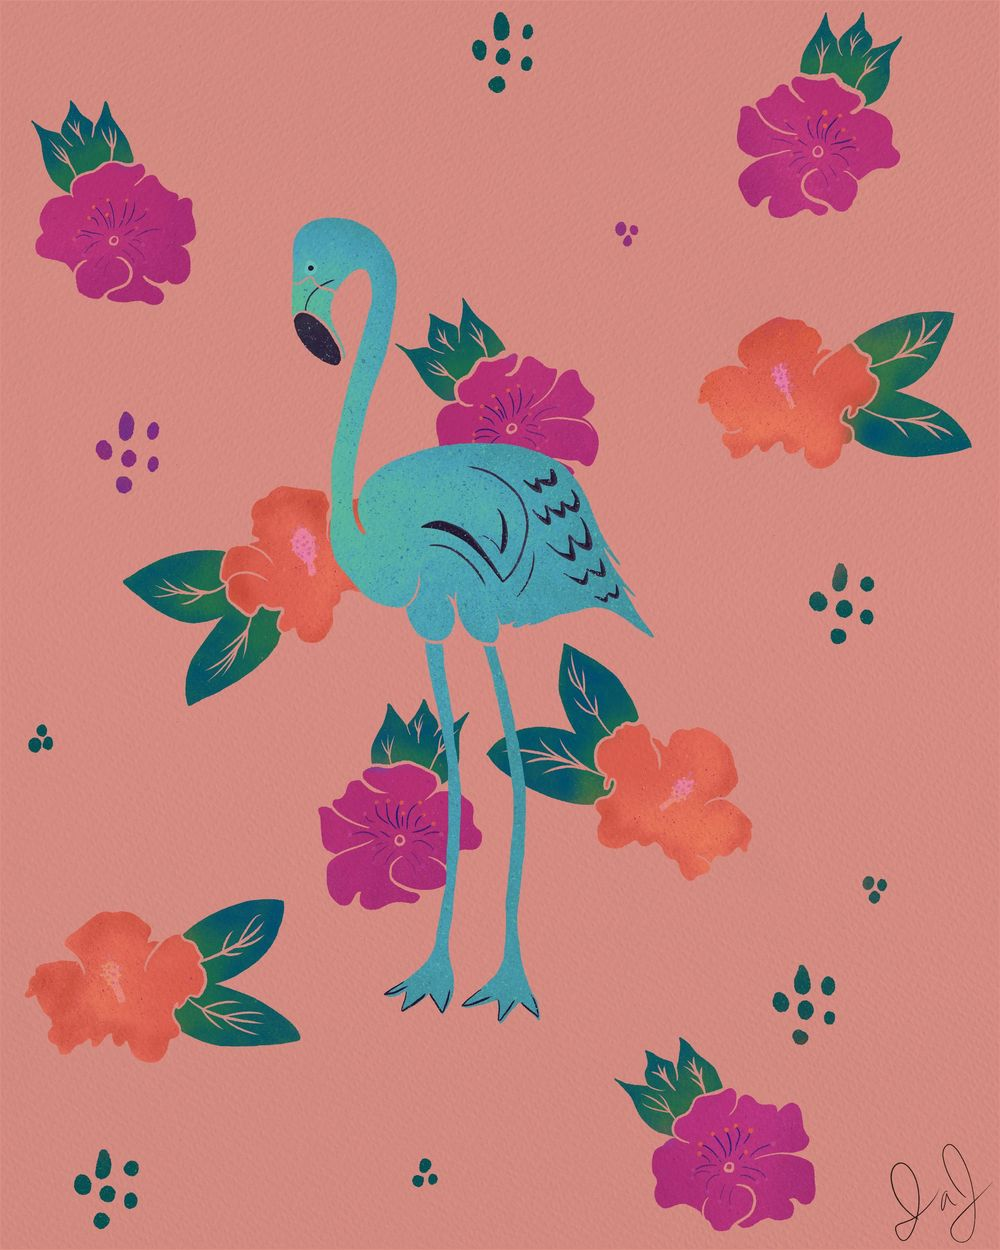 Flamingo in Paradise - image 2 - student project